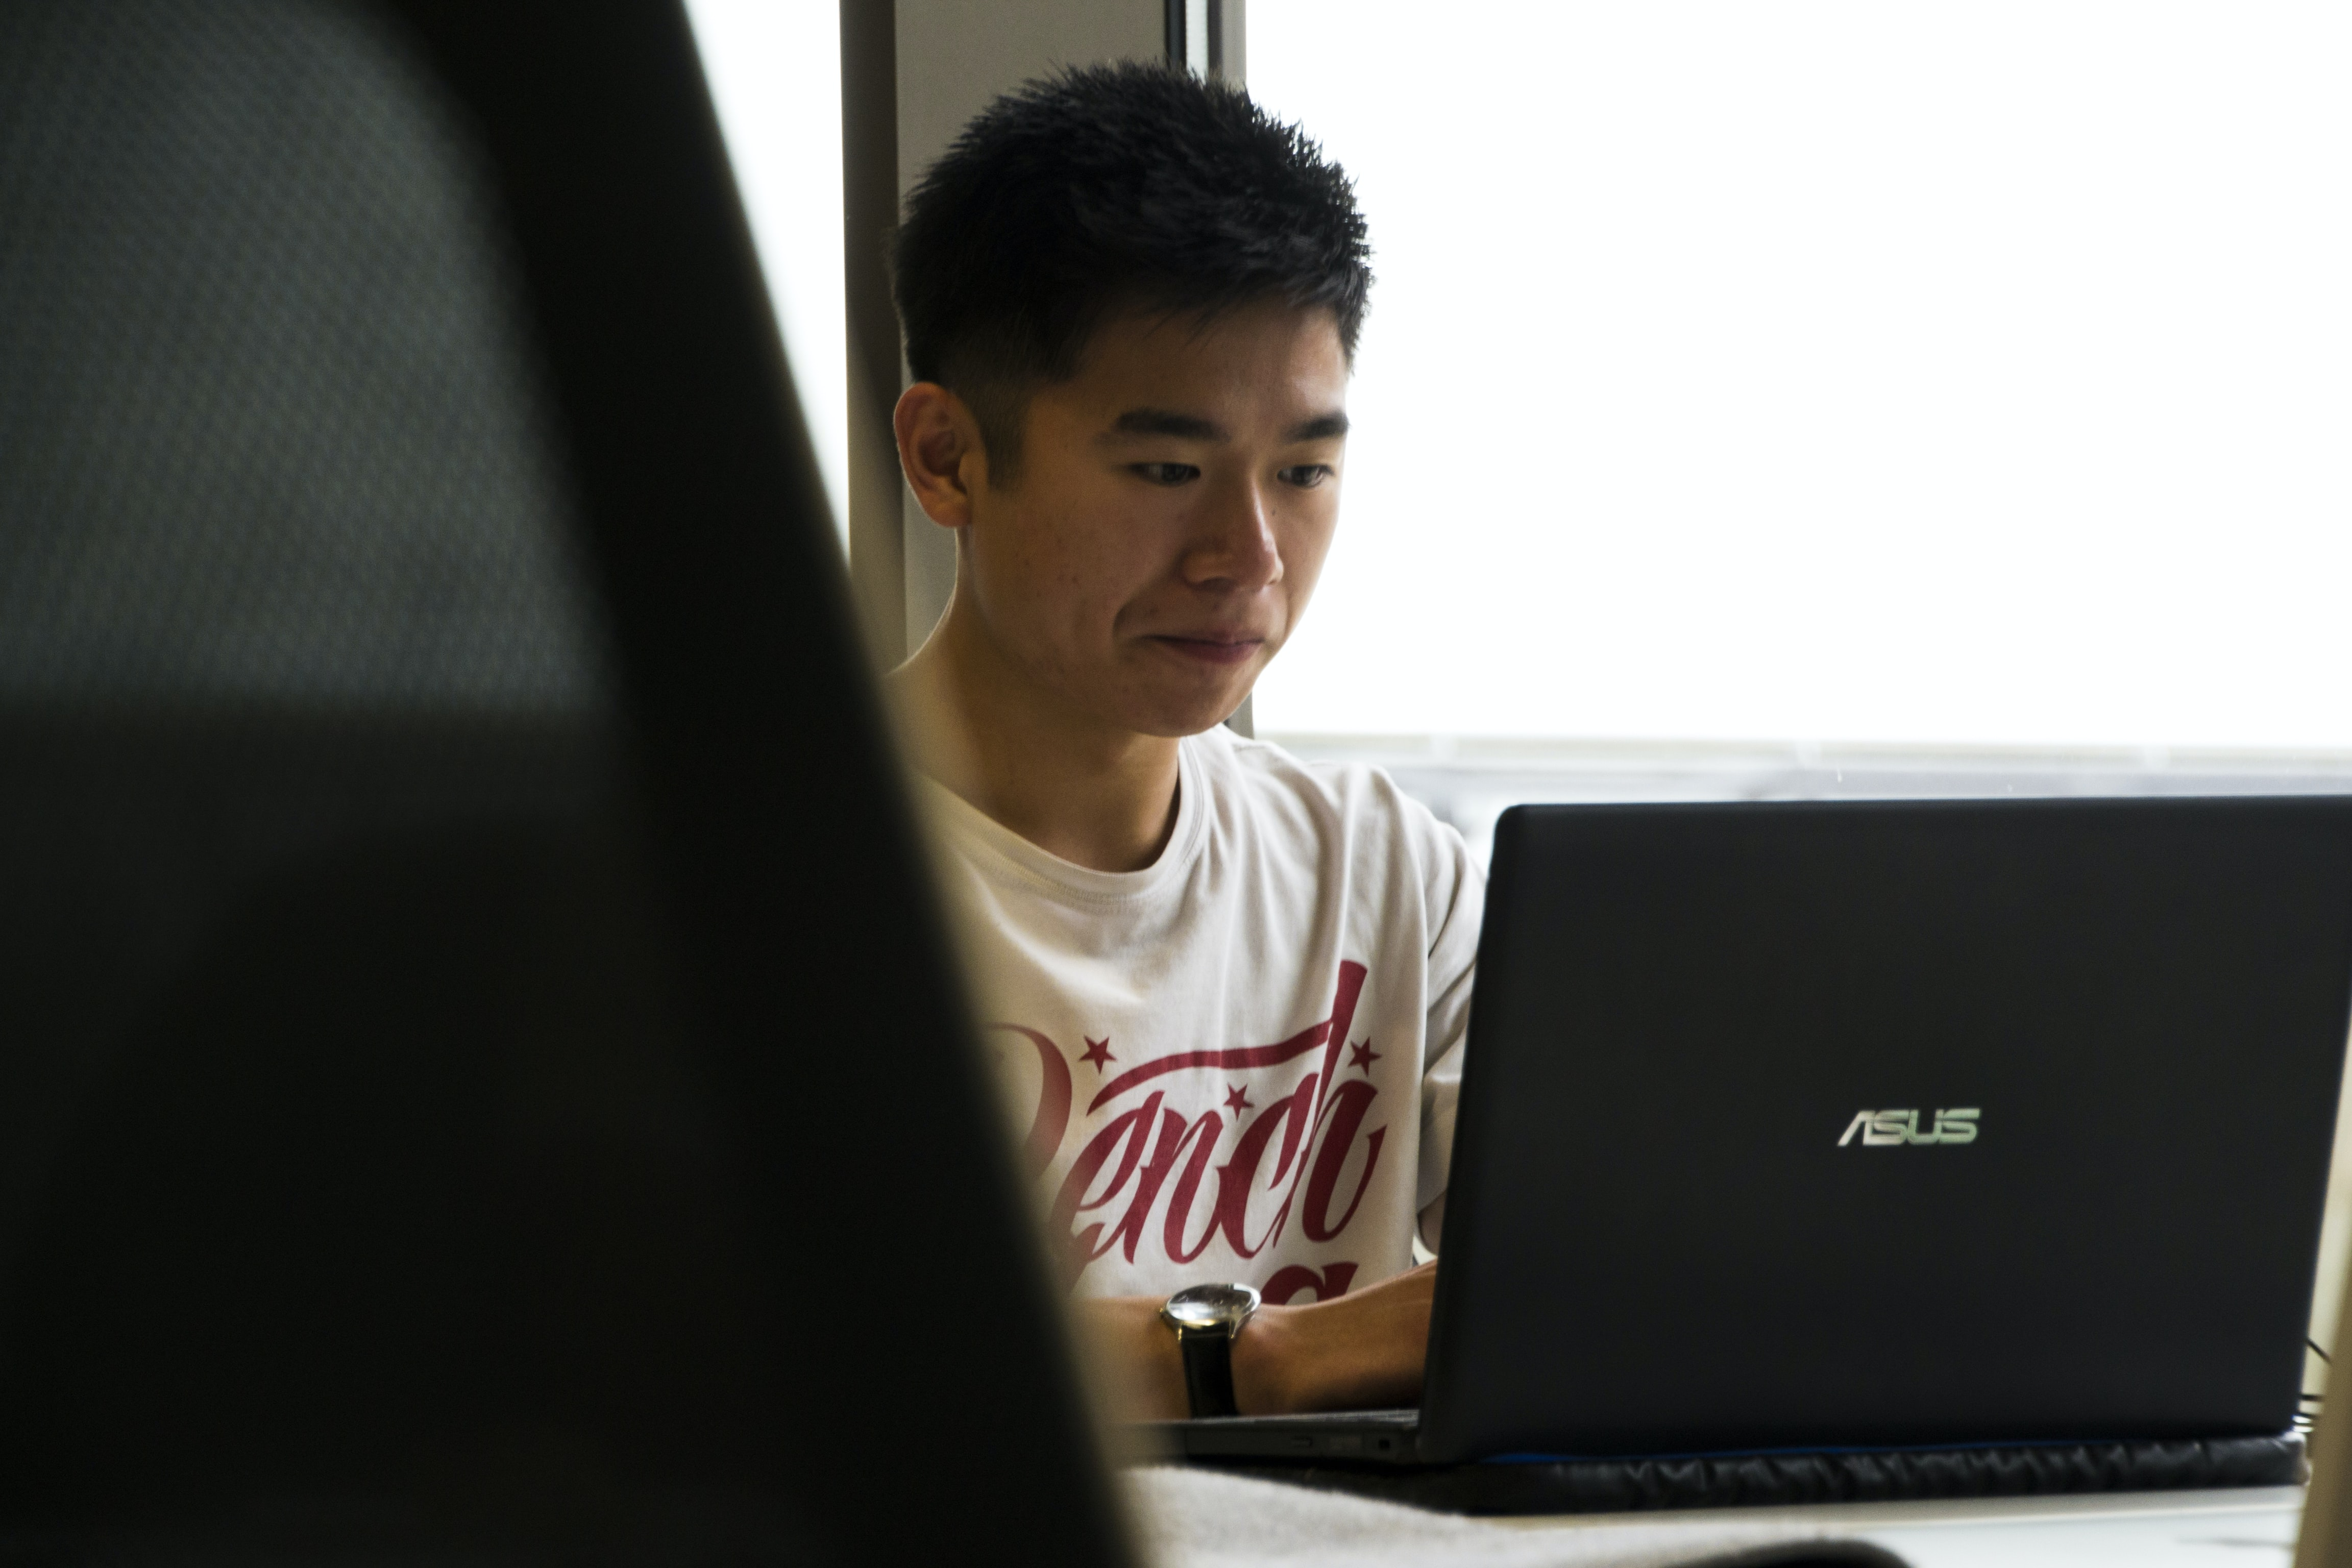 A young man sitting at a black laptop